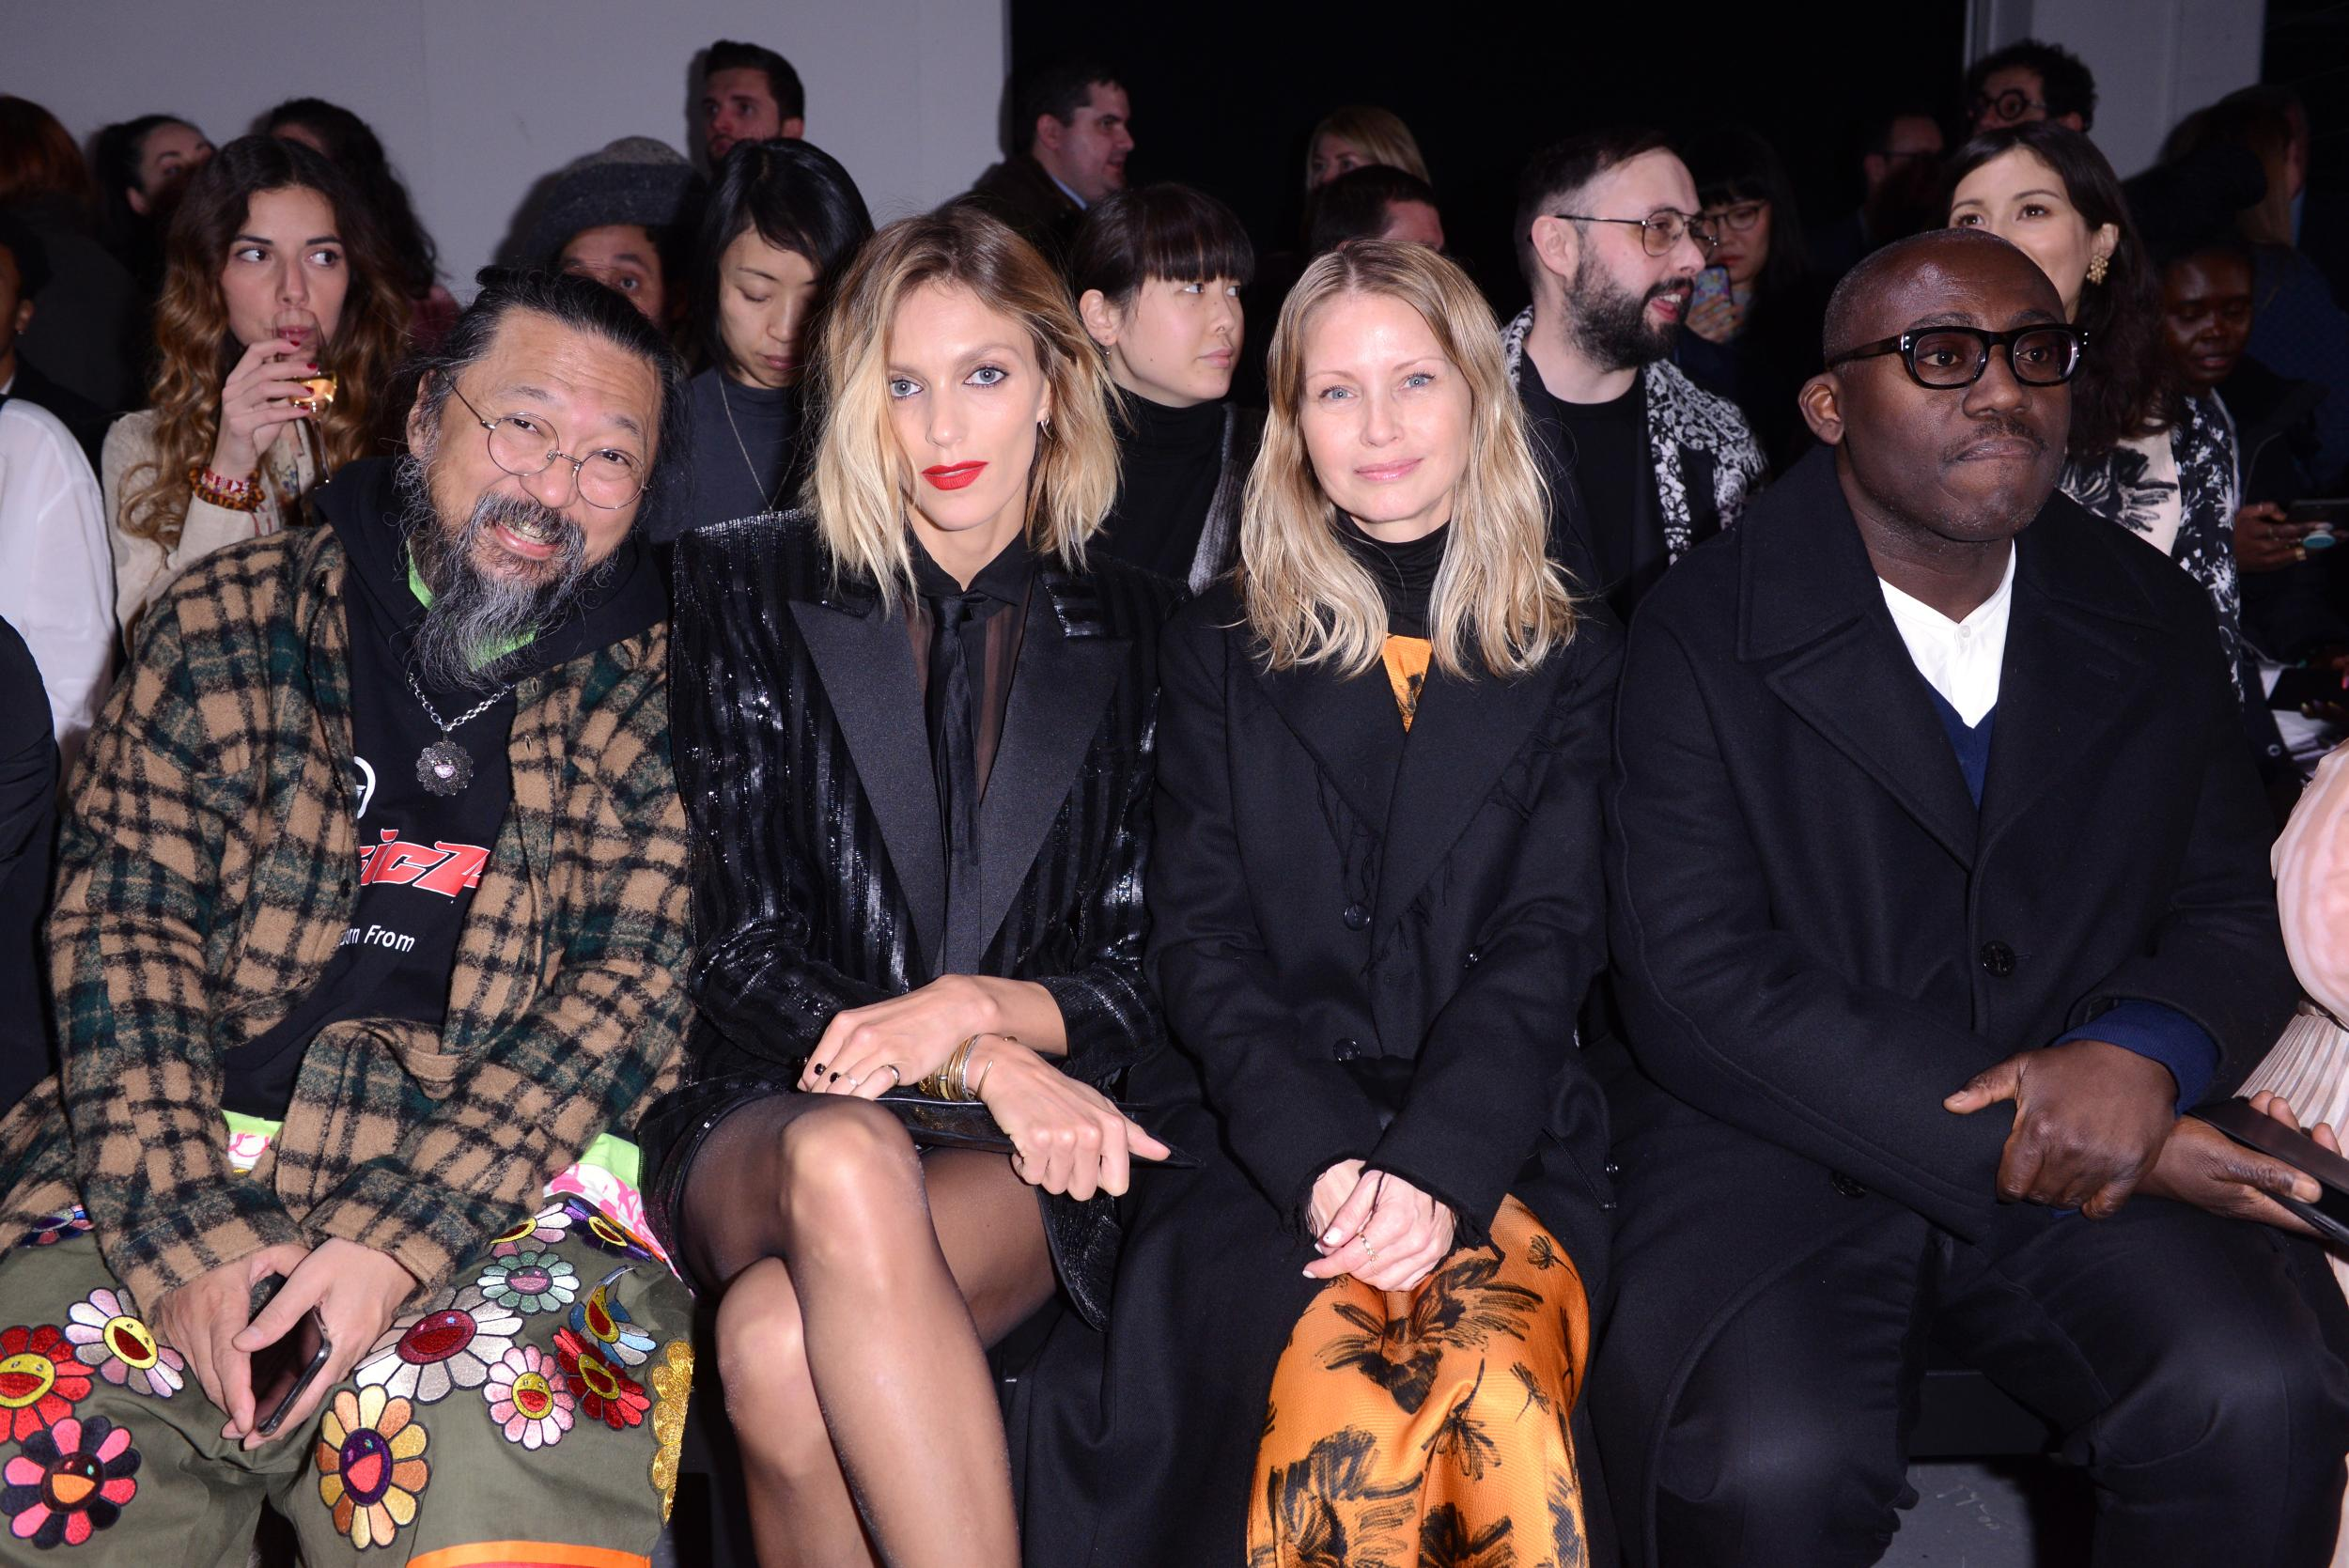 Takashi Murakami, Anja Rubik, Holli Rogers and Edward Enninful